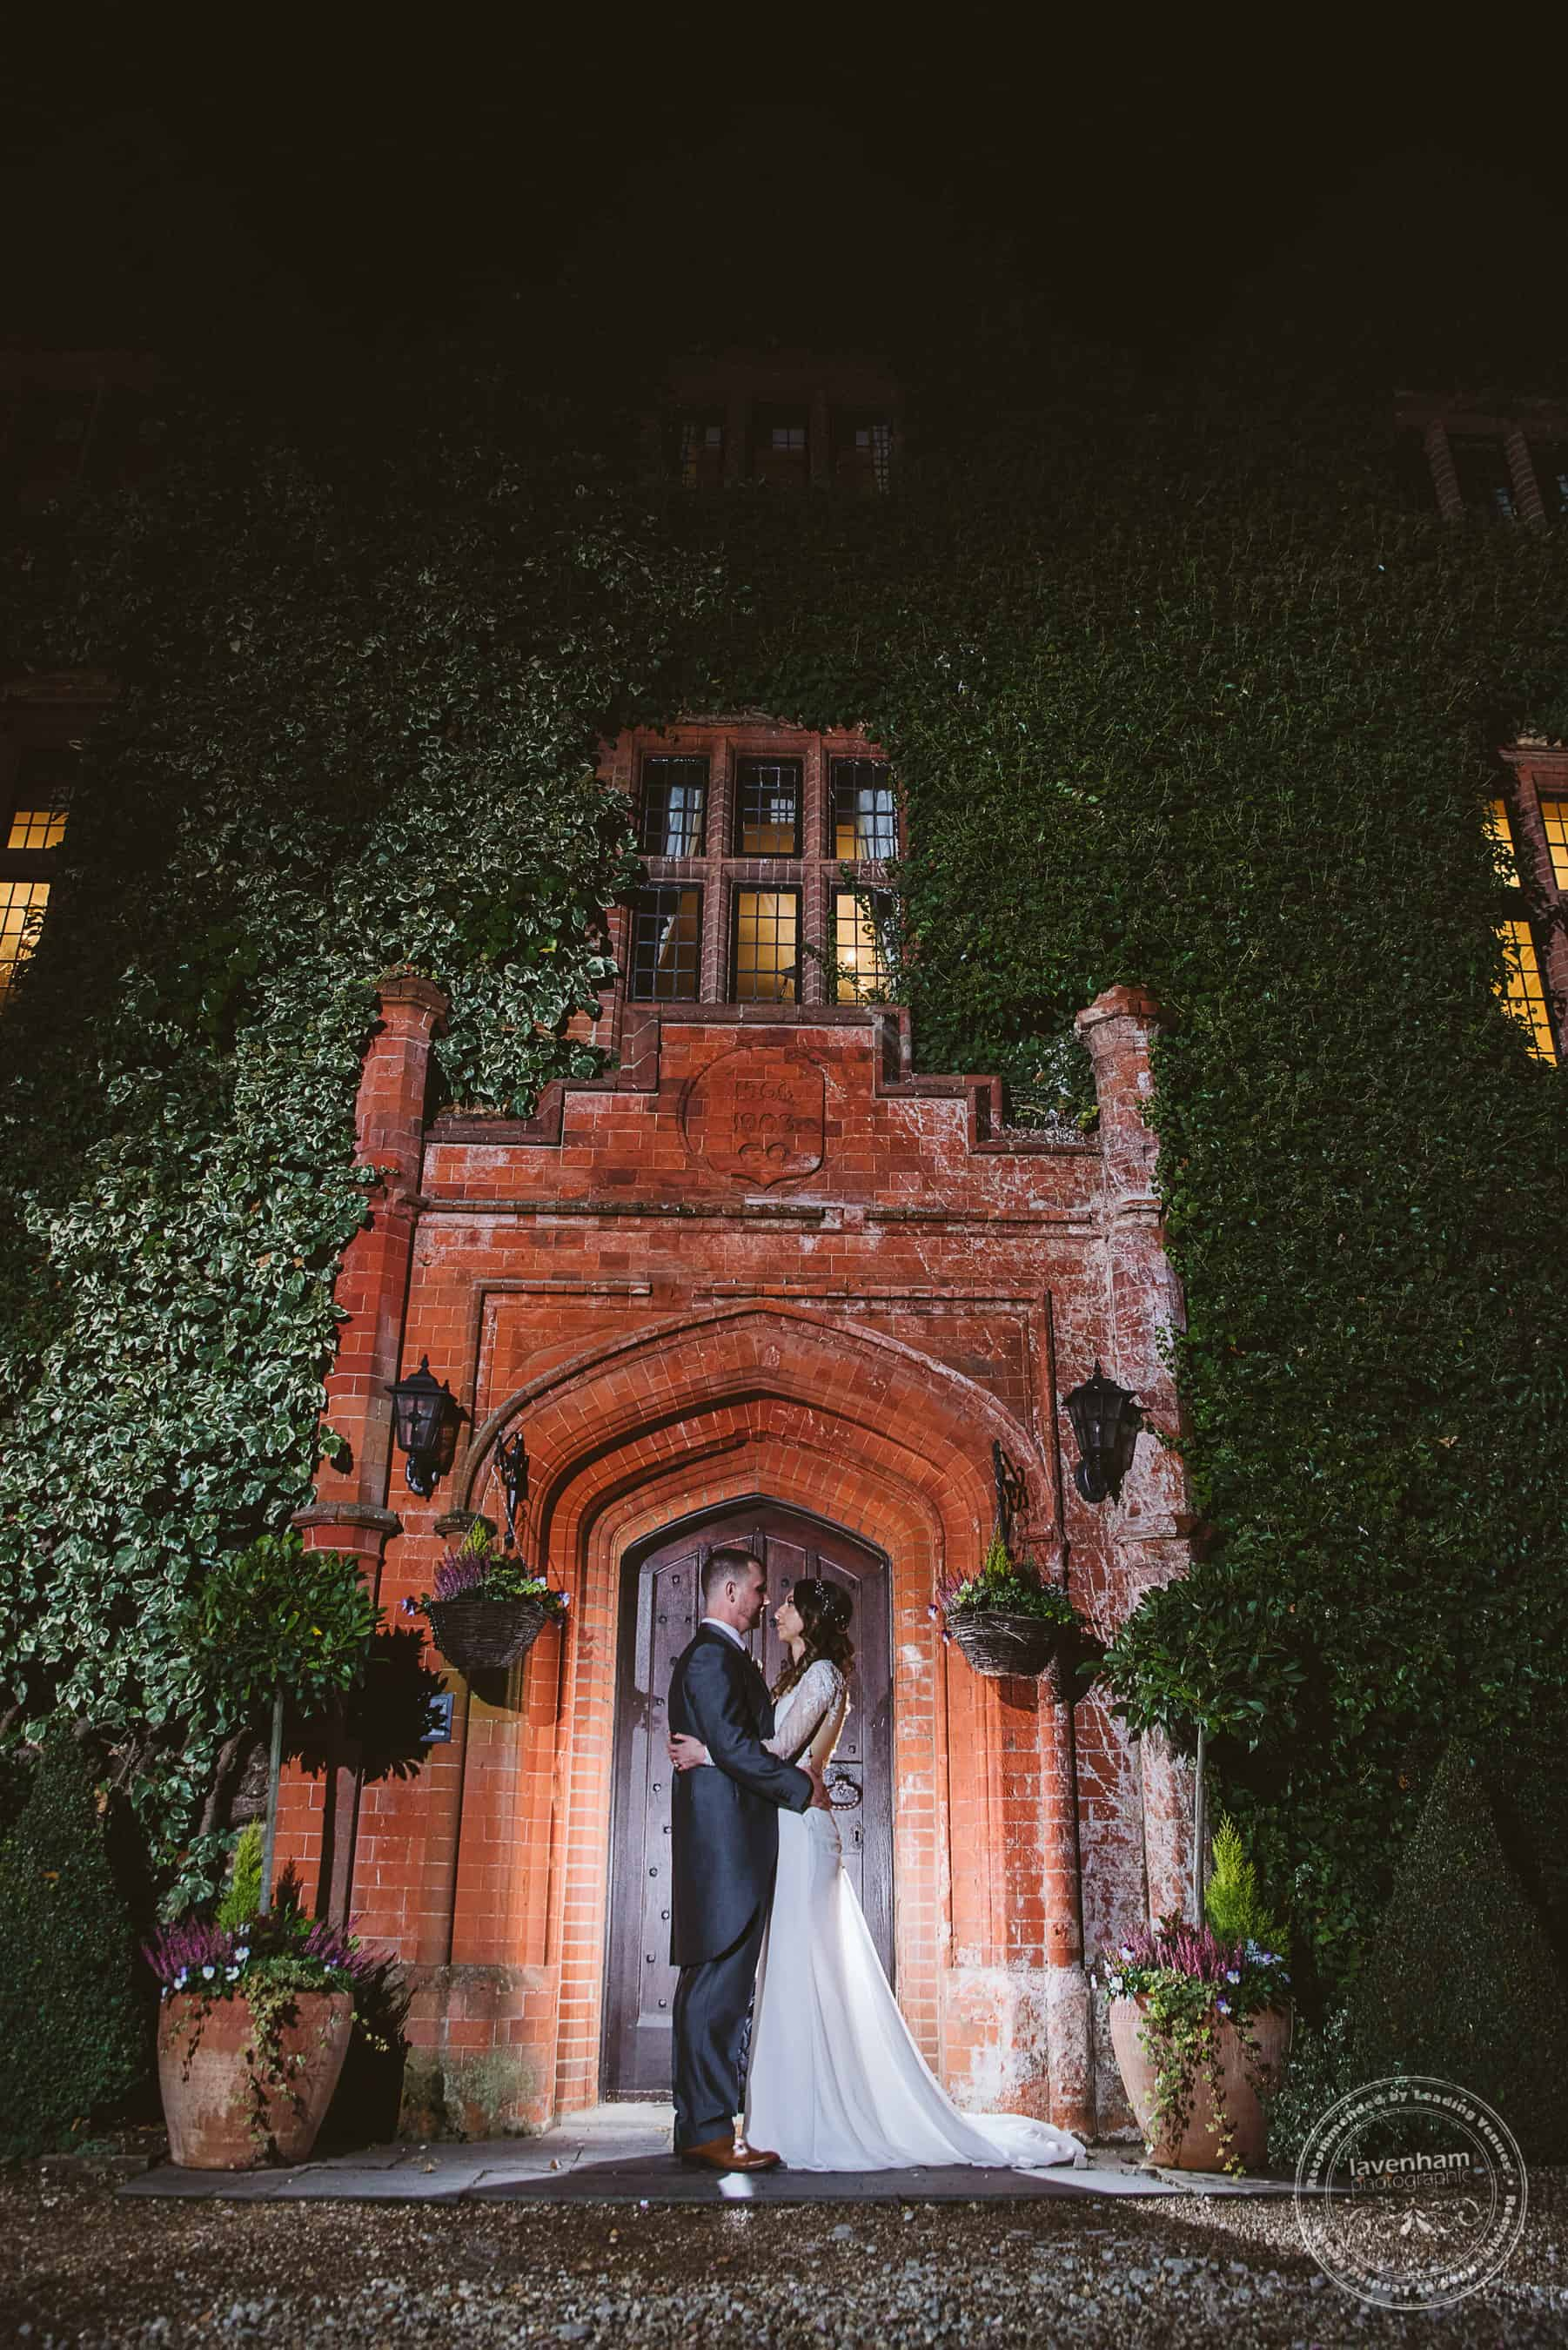 041118 Woodhall Manor Wedding Photography by Lavenham Photographic 116